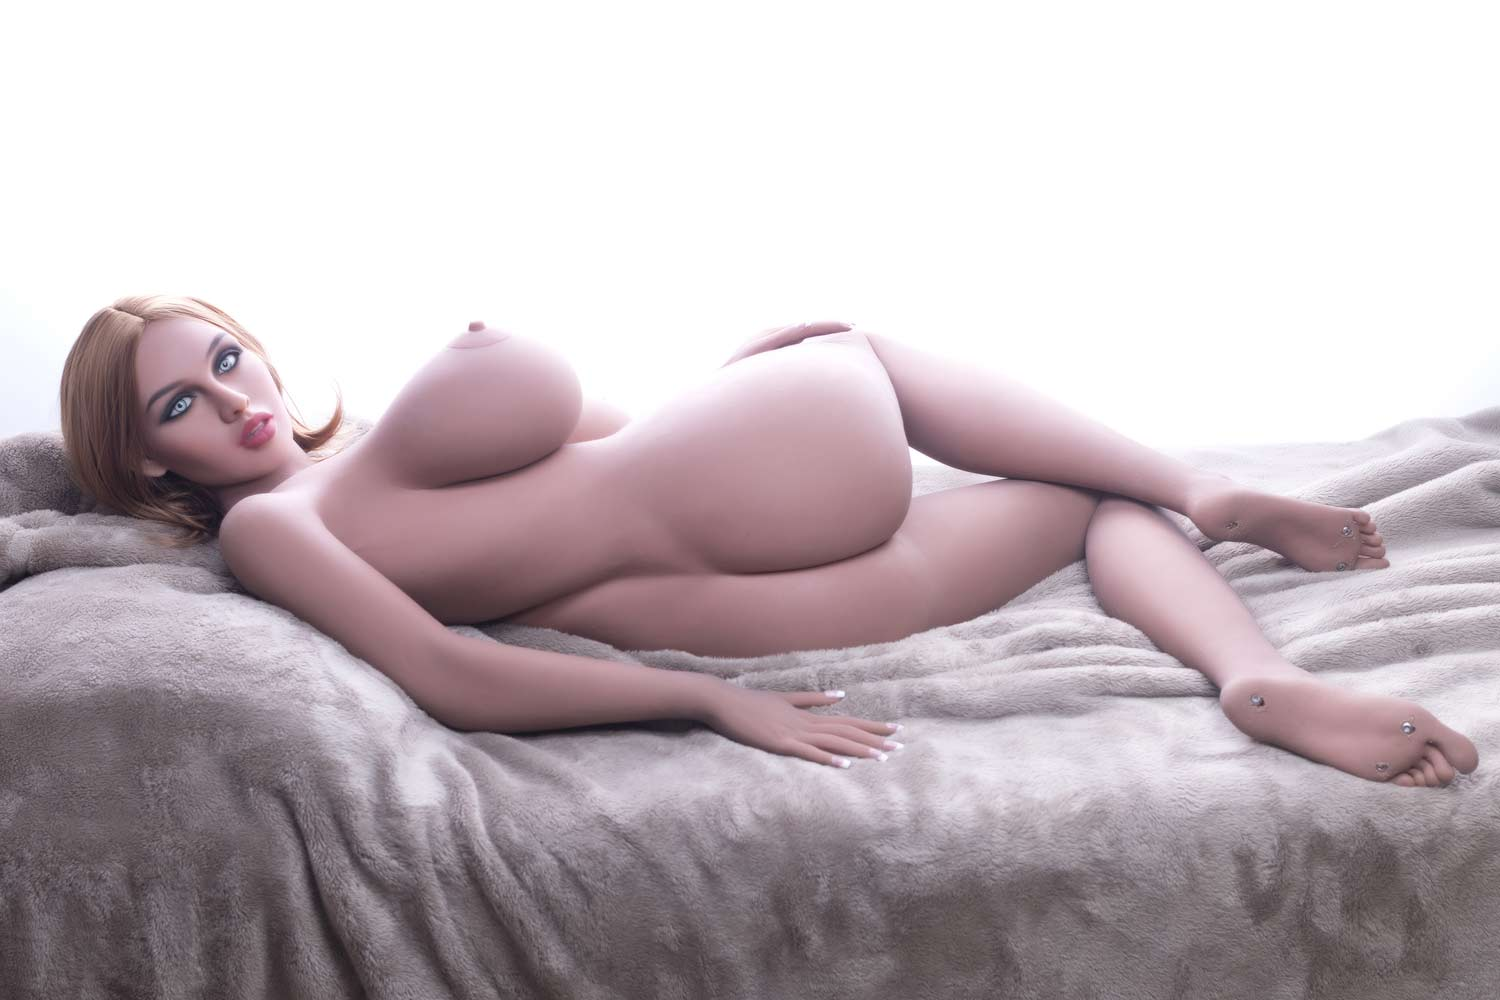 Sex doll lying naked on the side